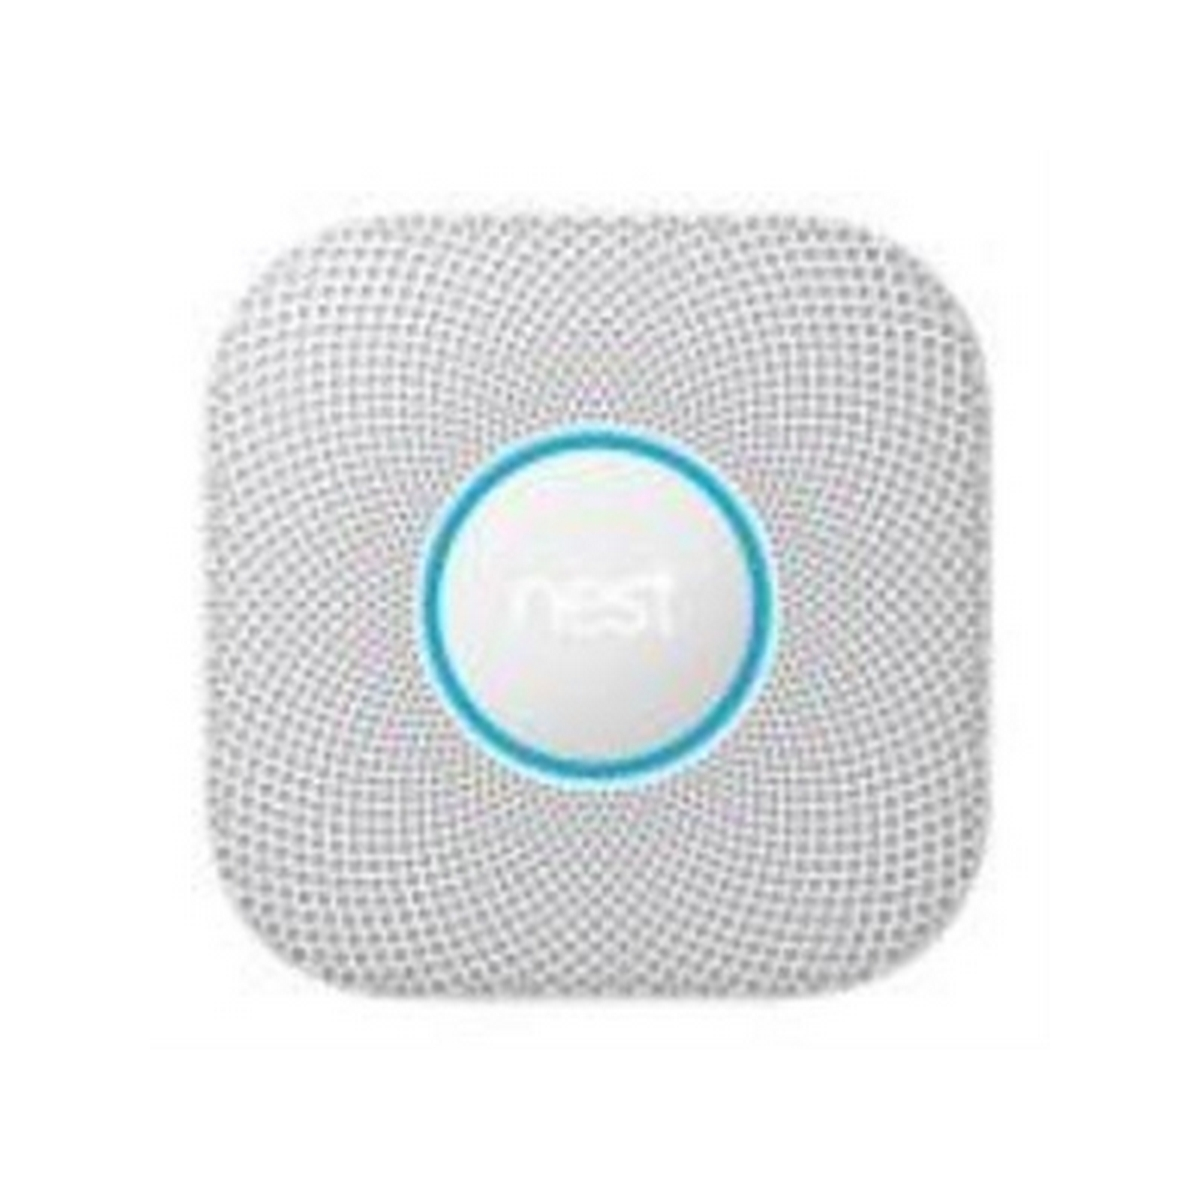 NEST S3003LWES 